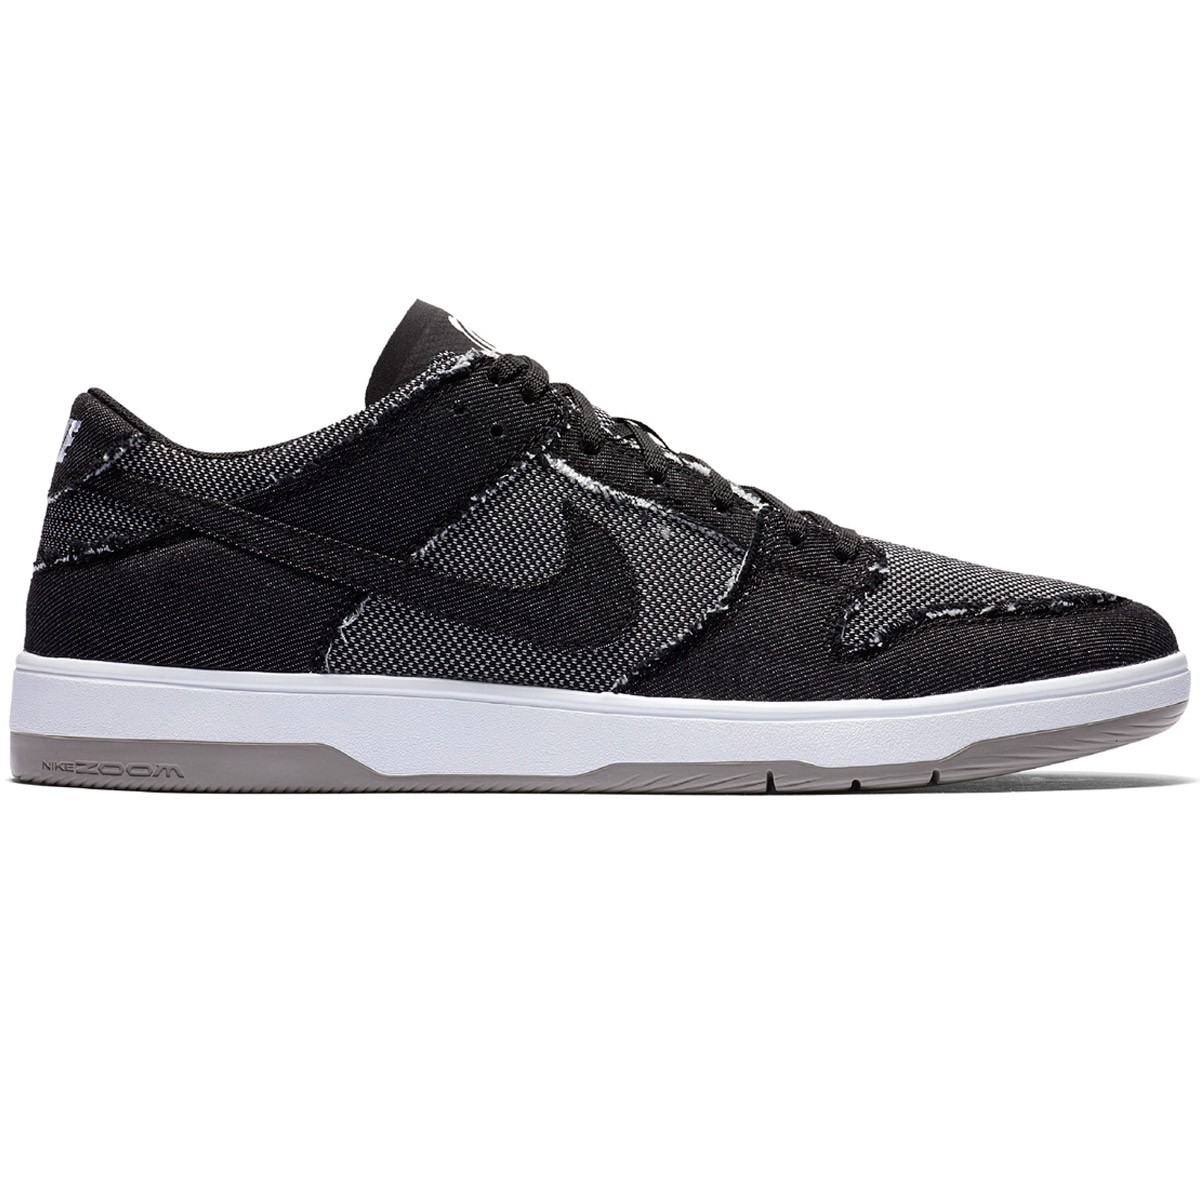 b2602140e23a Nike SB X Medicom Zoom Dunk Low Elite QS Shoes - Black Black White